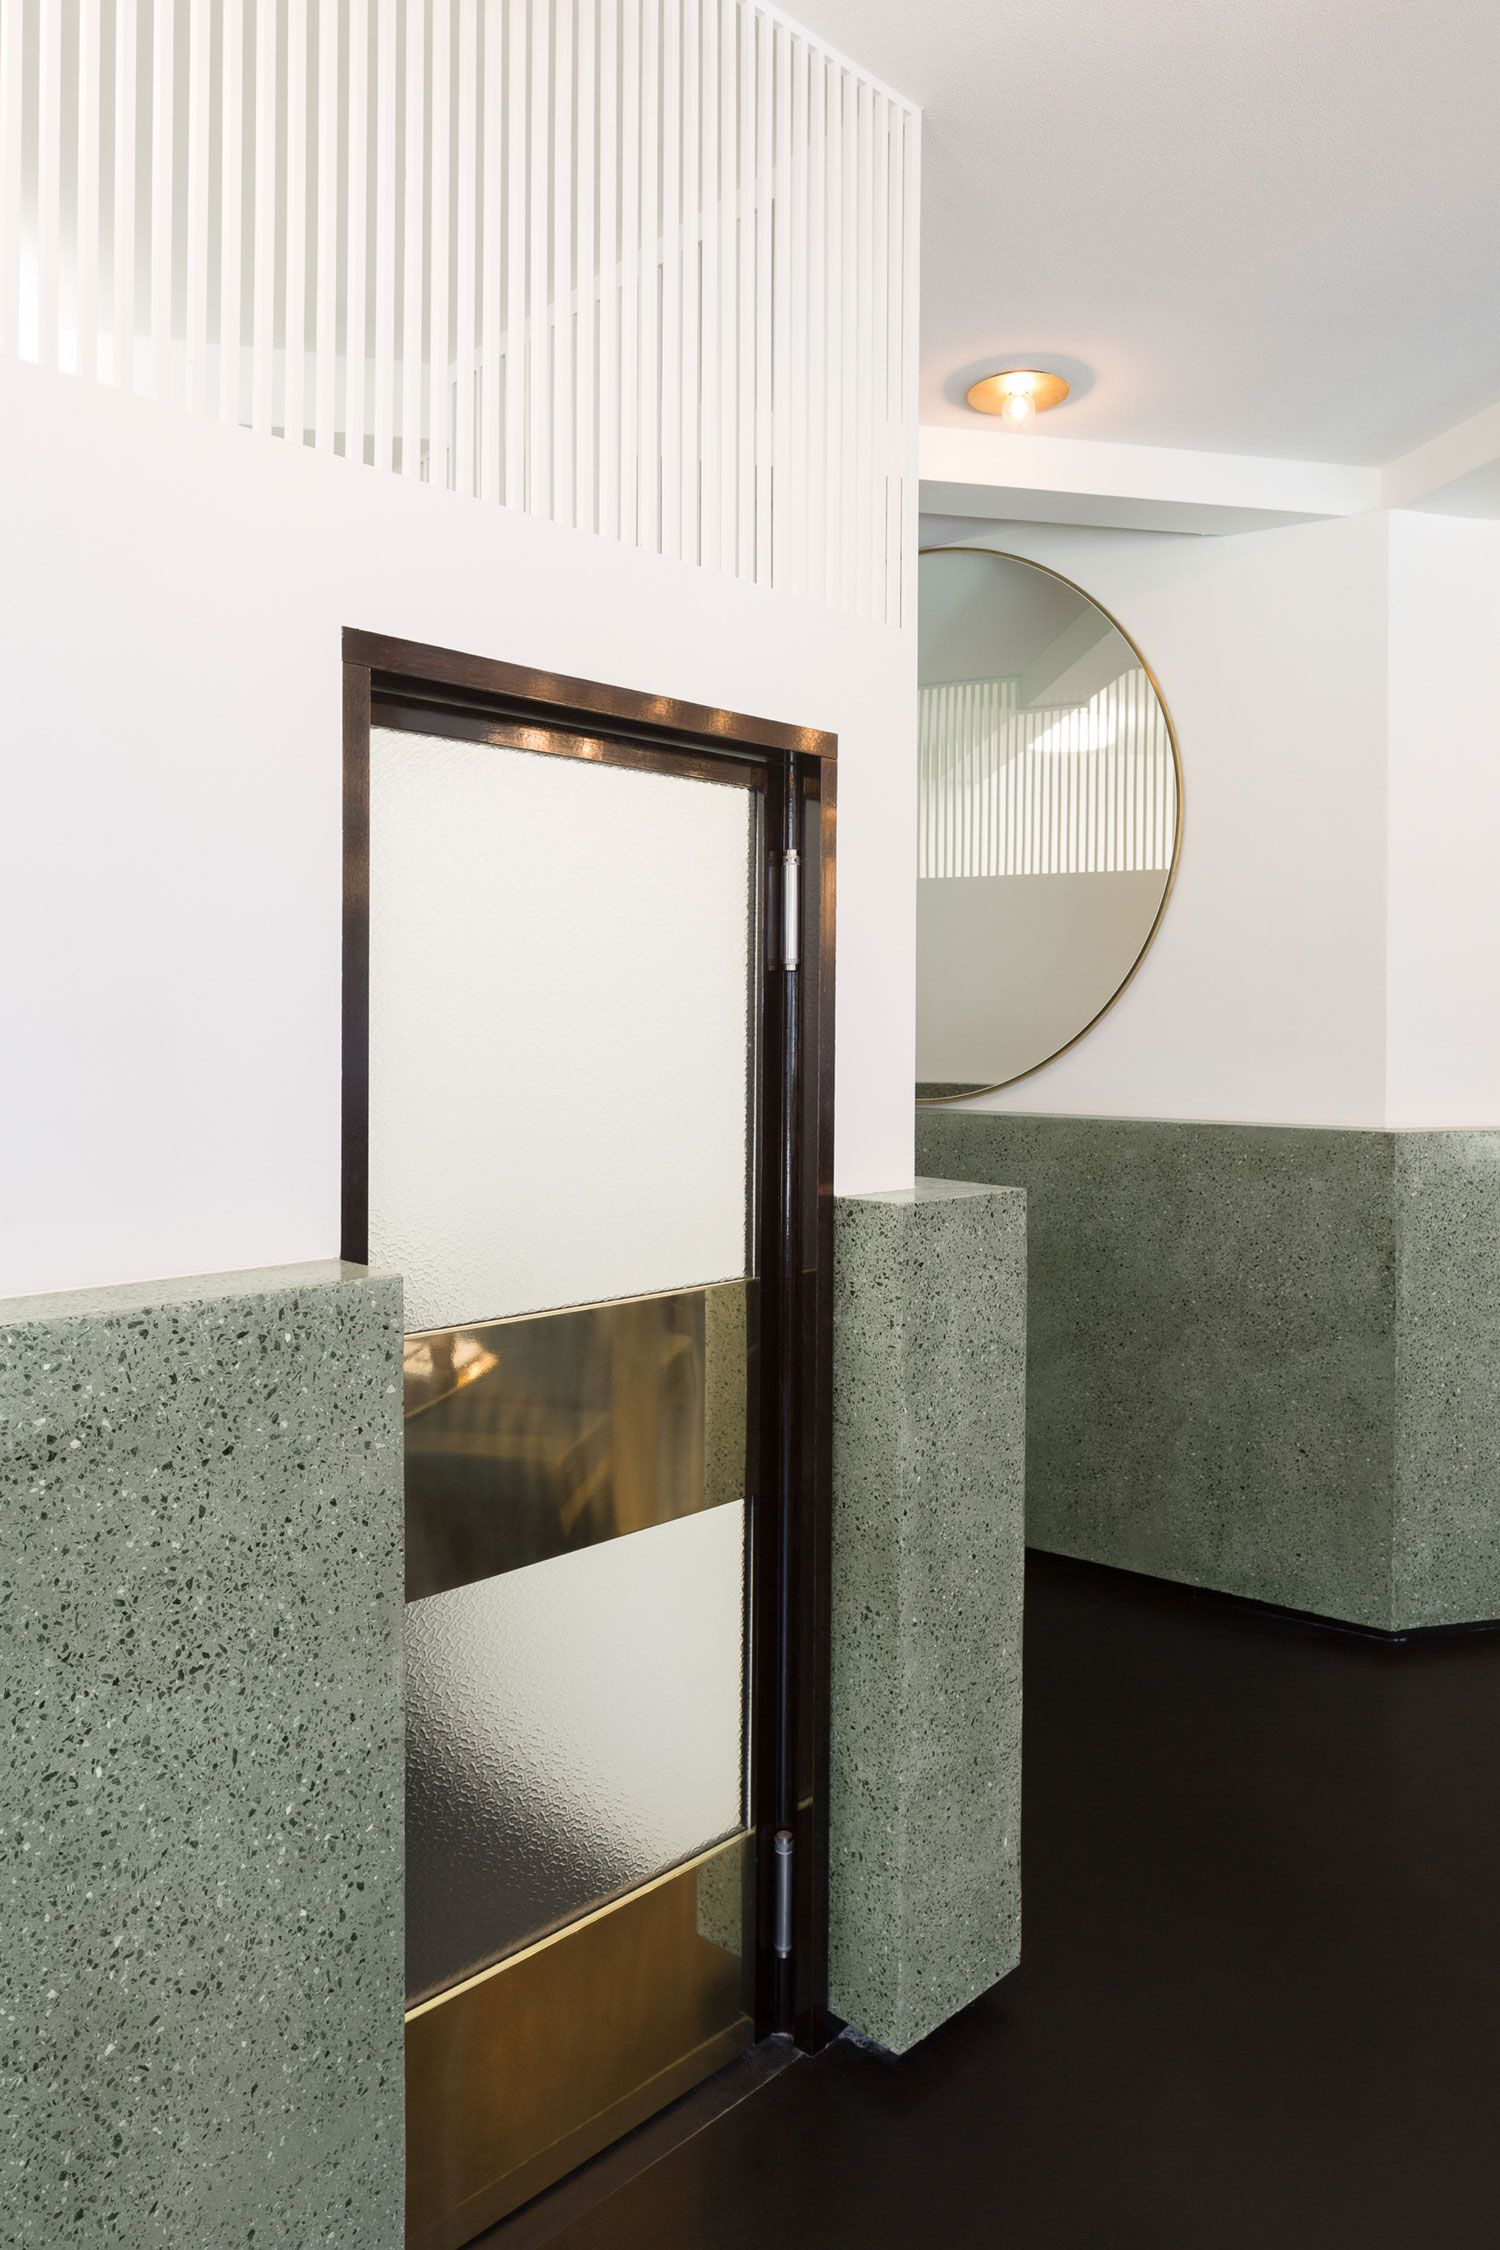 Porte Wc Interieur Ou Exterieur Victor Café Brussels By Robbrecht And Daem Cafe Decoración